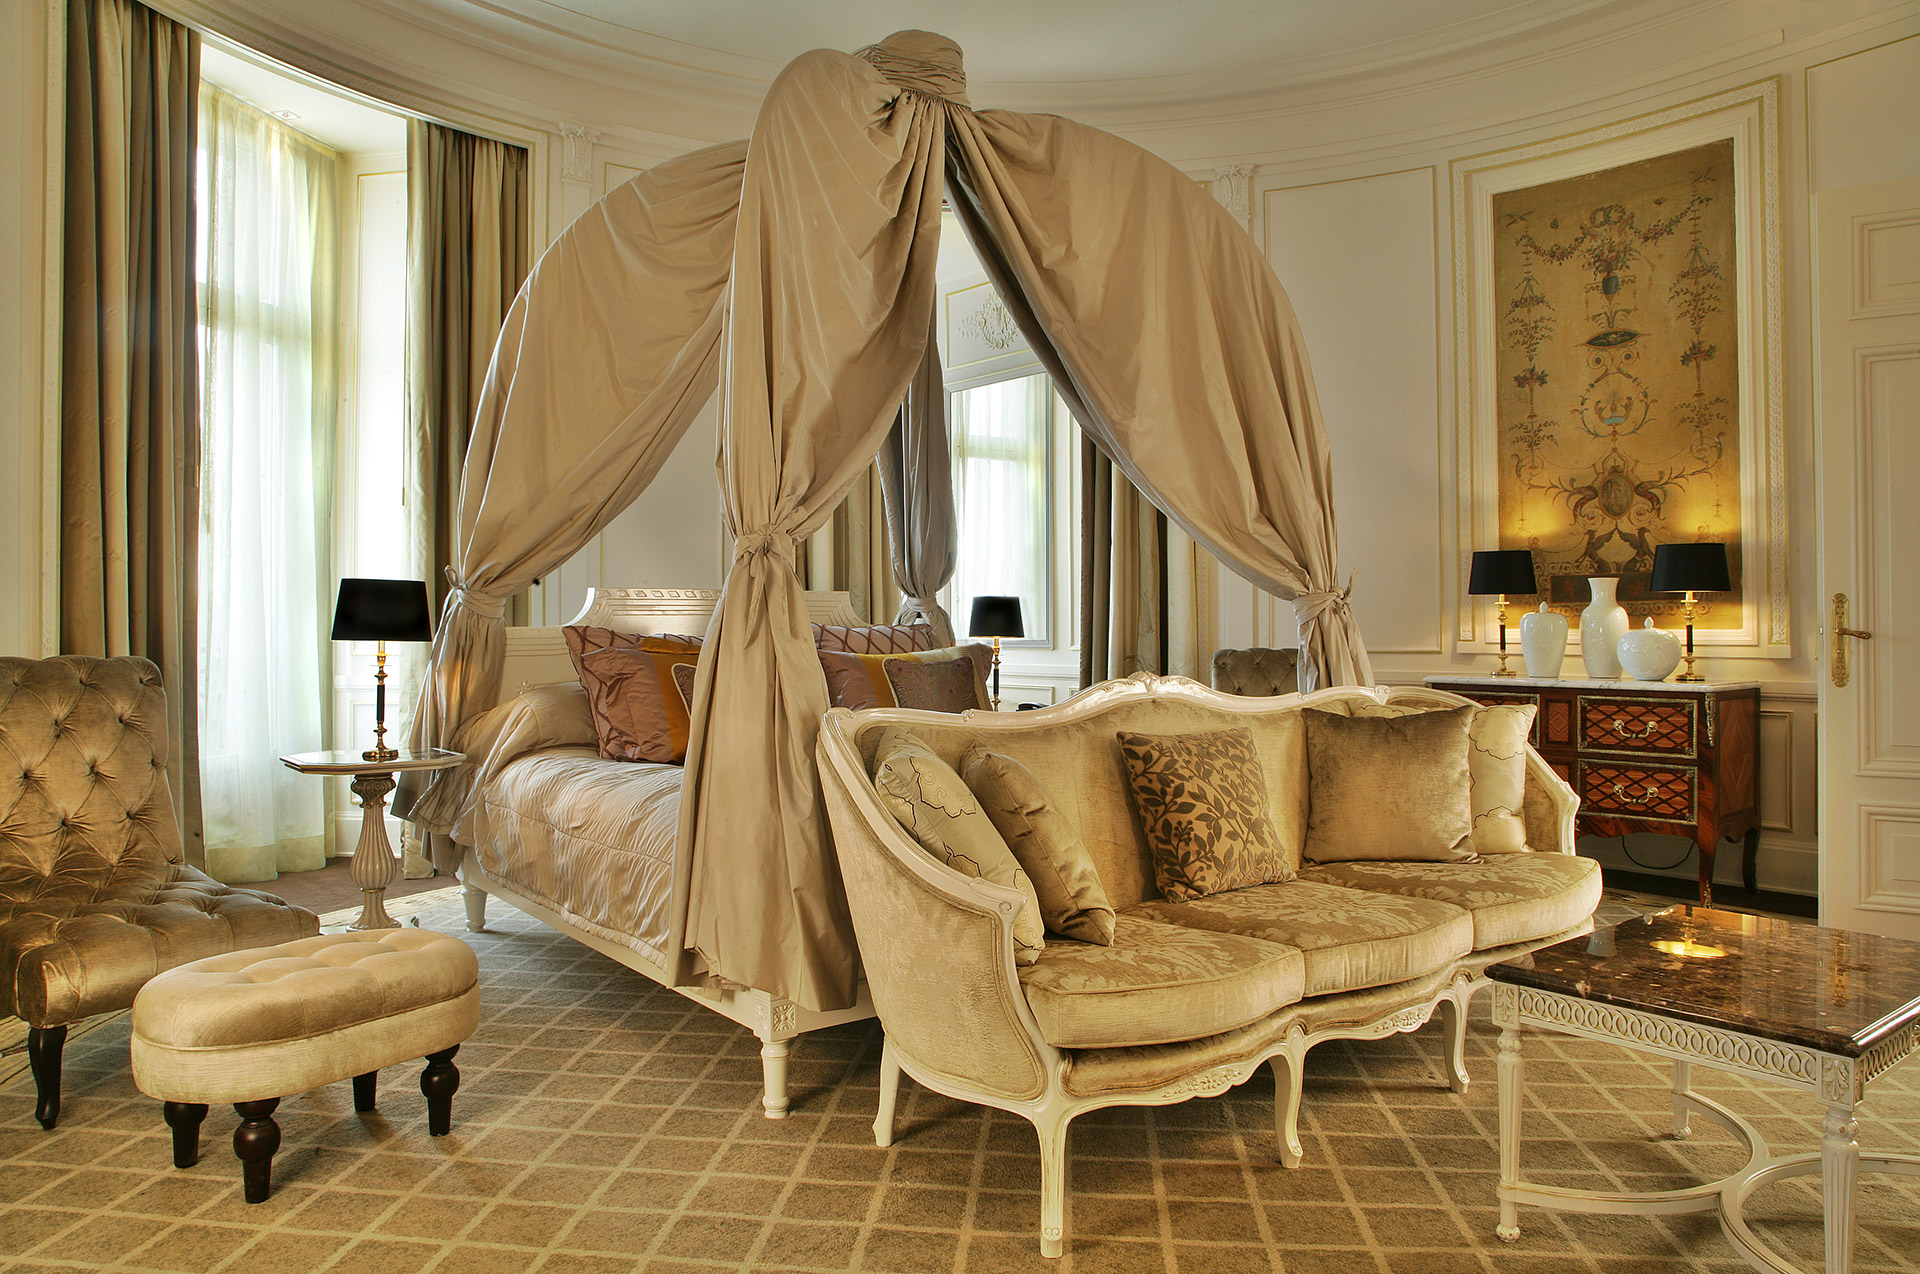 467/import-from-v1/images/Chambres/Suite Royale/146-Chambre.jpg